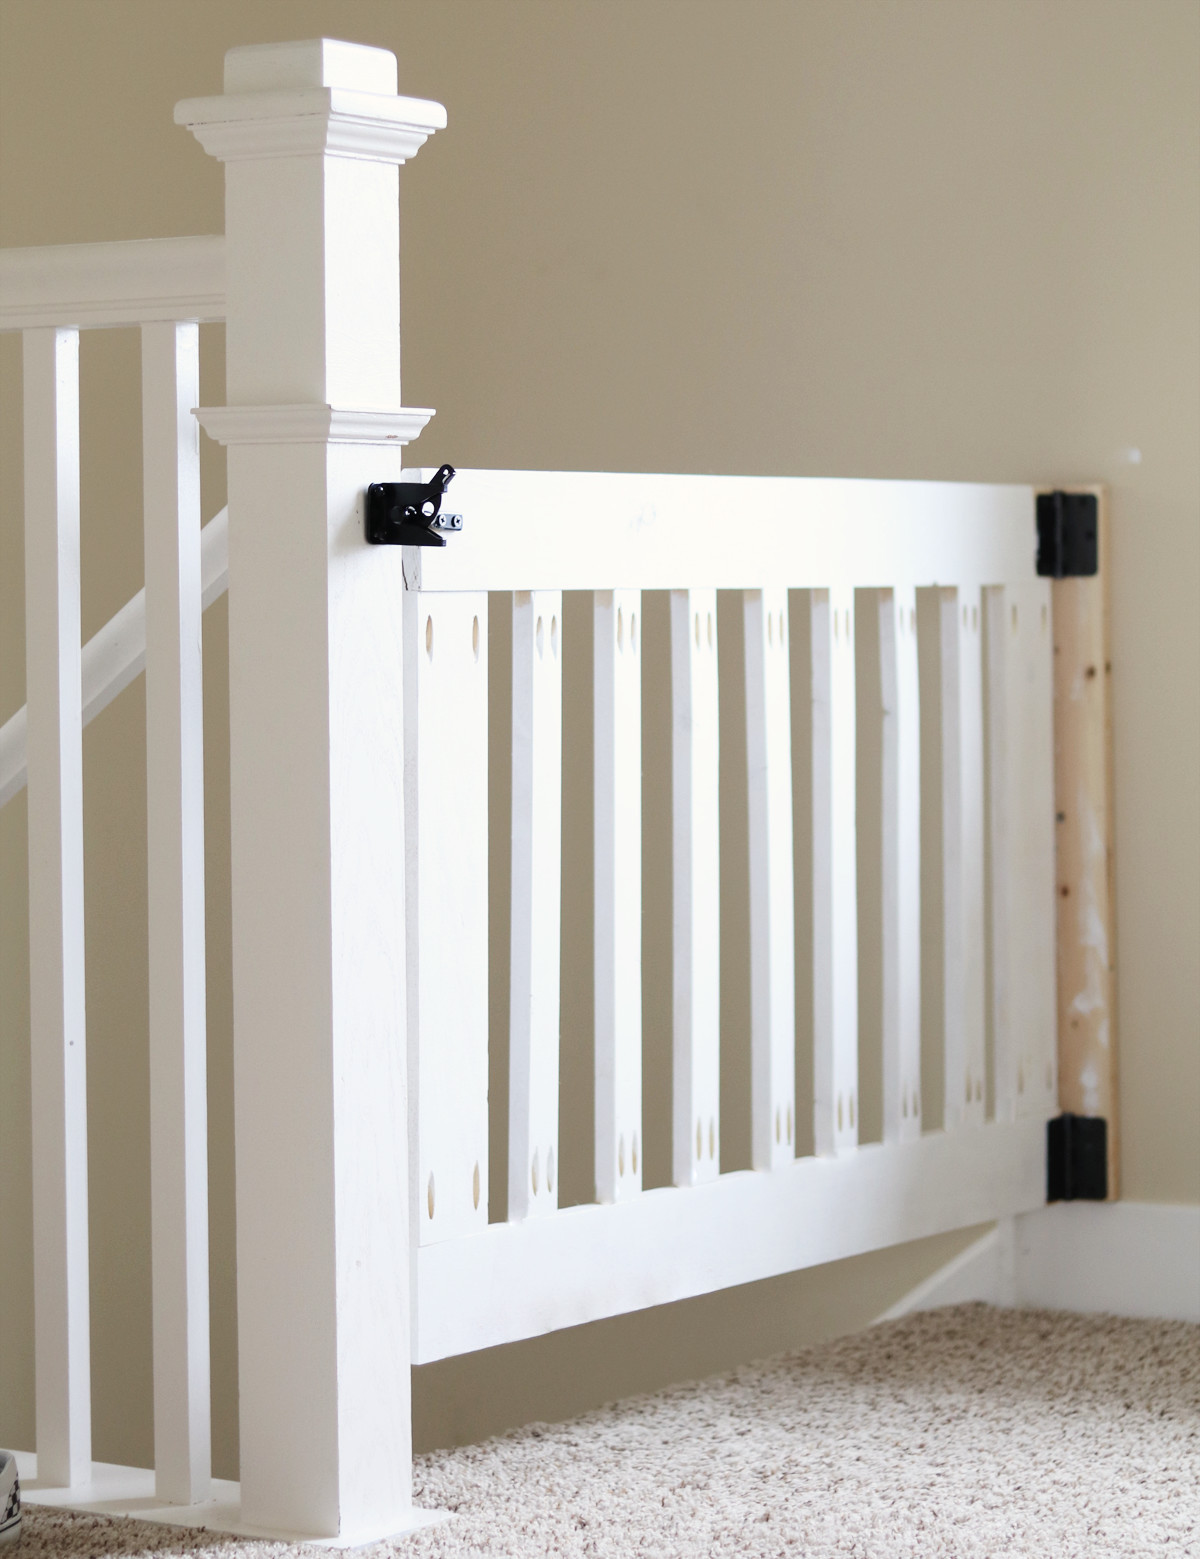 Best ideas about DIY Baby Gate For Stairs . Save or Pin DIY Baby Gate – The Love Notes Blog Now.